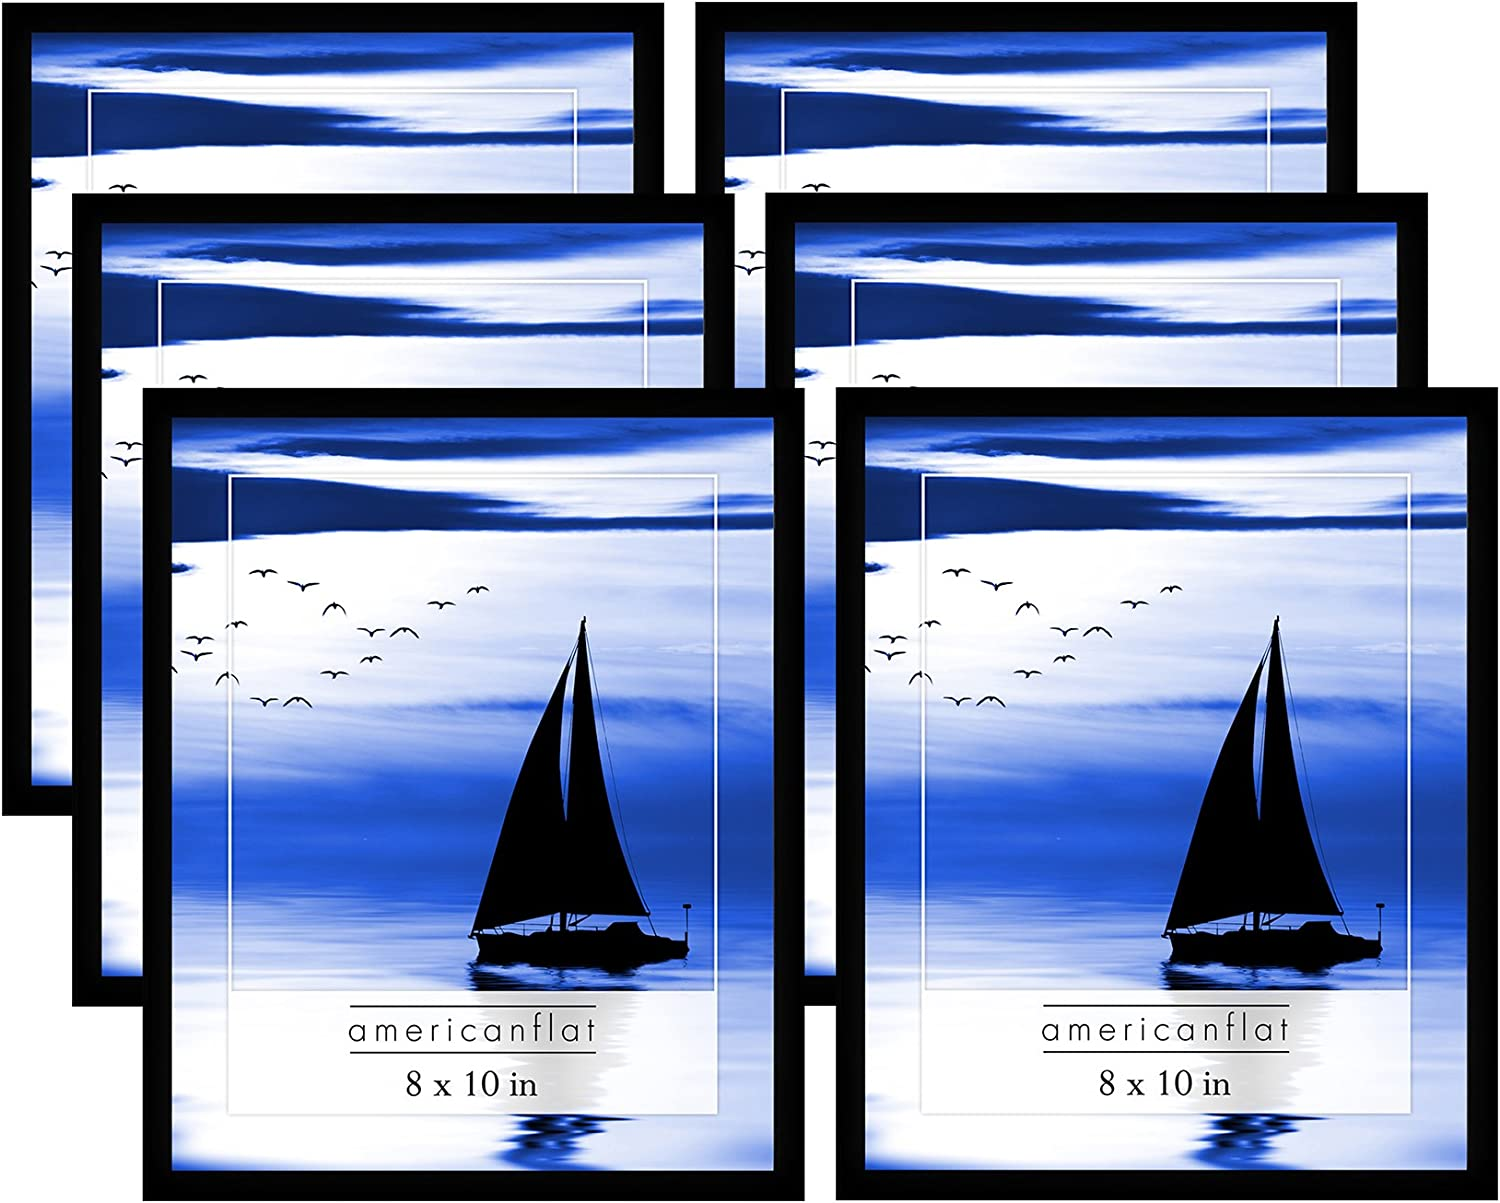 Free Shipping Cheap Bargain Gift Americanflat 6 Piece 8x10 Gallery Super beauty product restock quality top! Wall Blac Frame Picture Set in